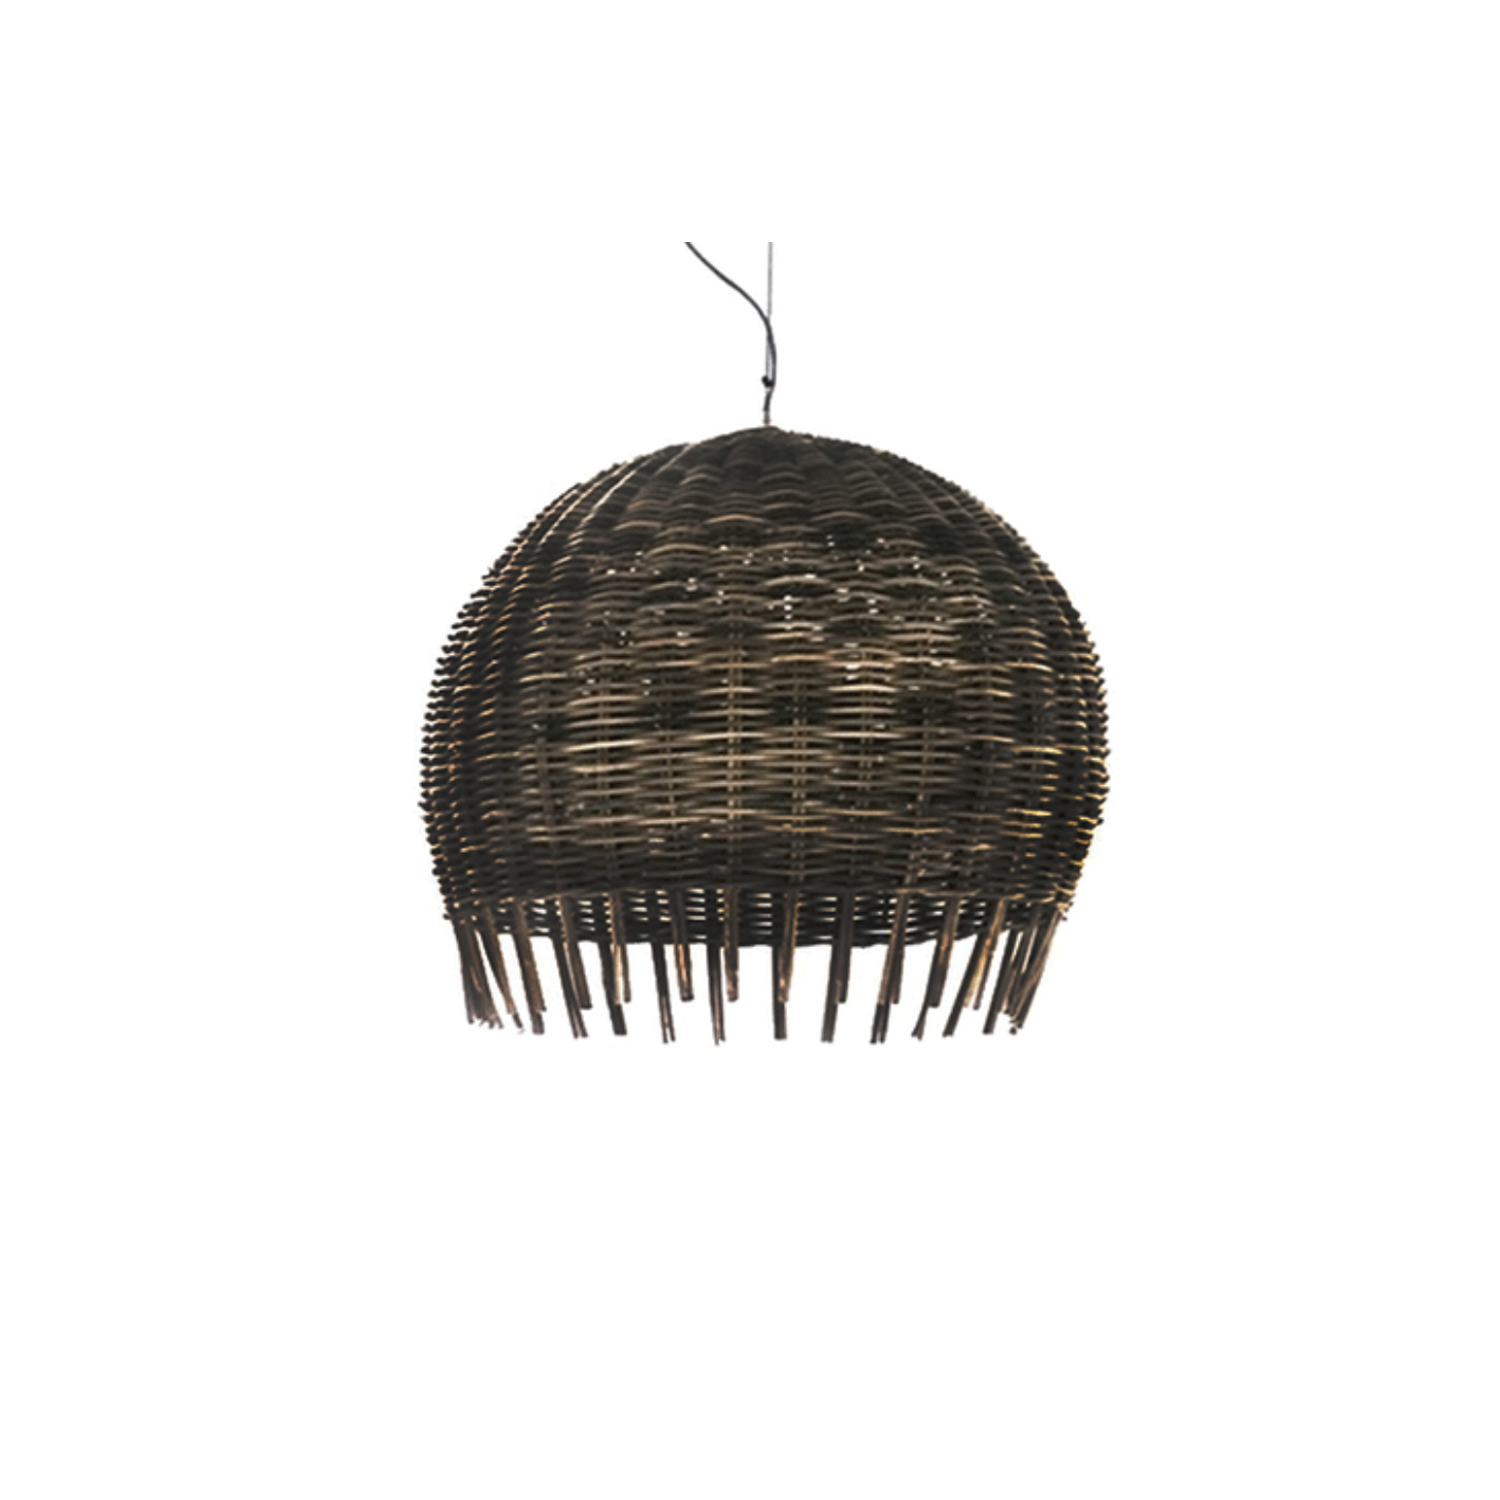 """Croco 96 Pendant Lamp - This rattan collection derives its name from the raw material used – originally called in Kalimantan dialect """"Buaya"""", translated as """"Crocodile"""" for its special colour and nuances. Frames are of rattan, wood and plywood. Seats are completely woven. Cushions of polyurethane foams, Dacron and down, all covers are removable. The bulb is not included. 